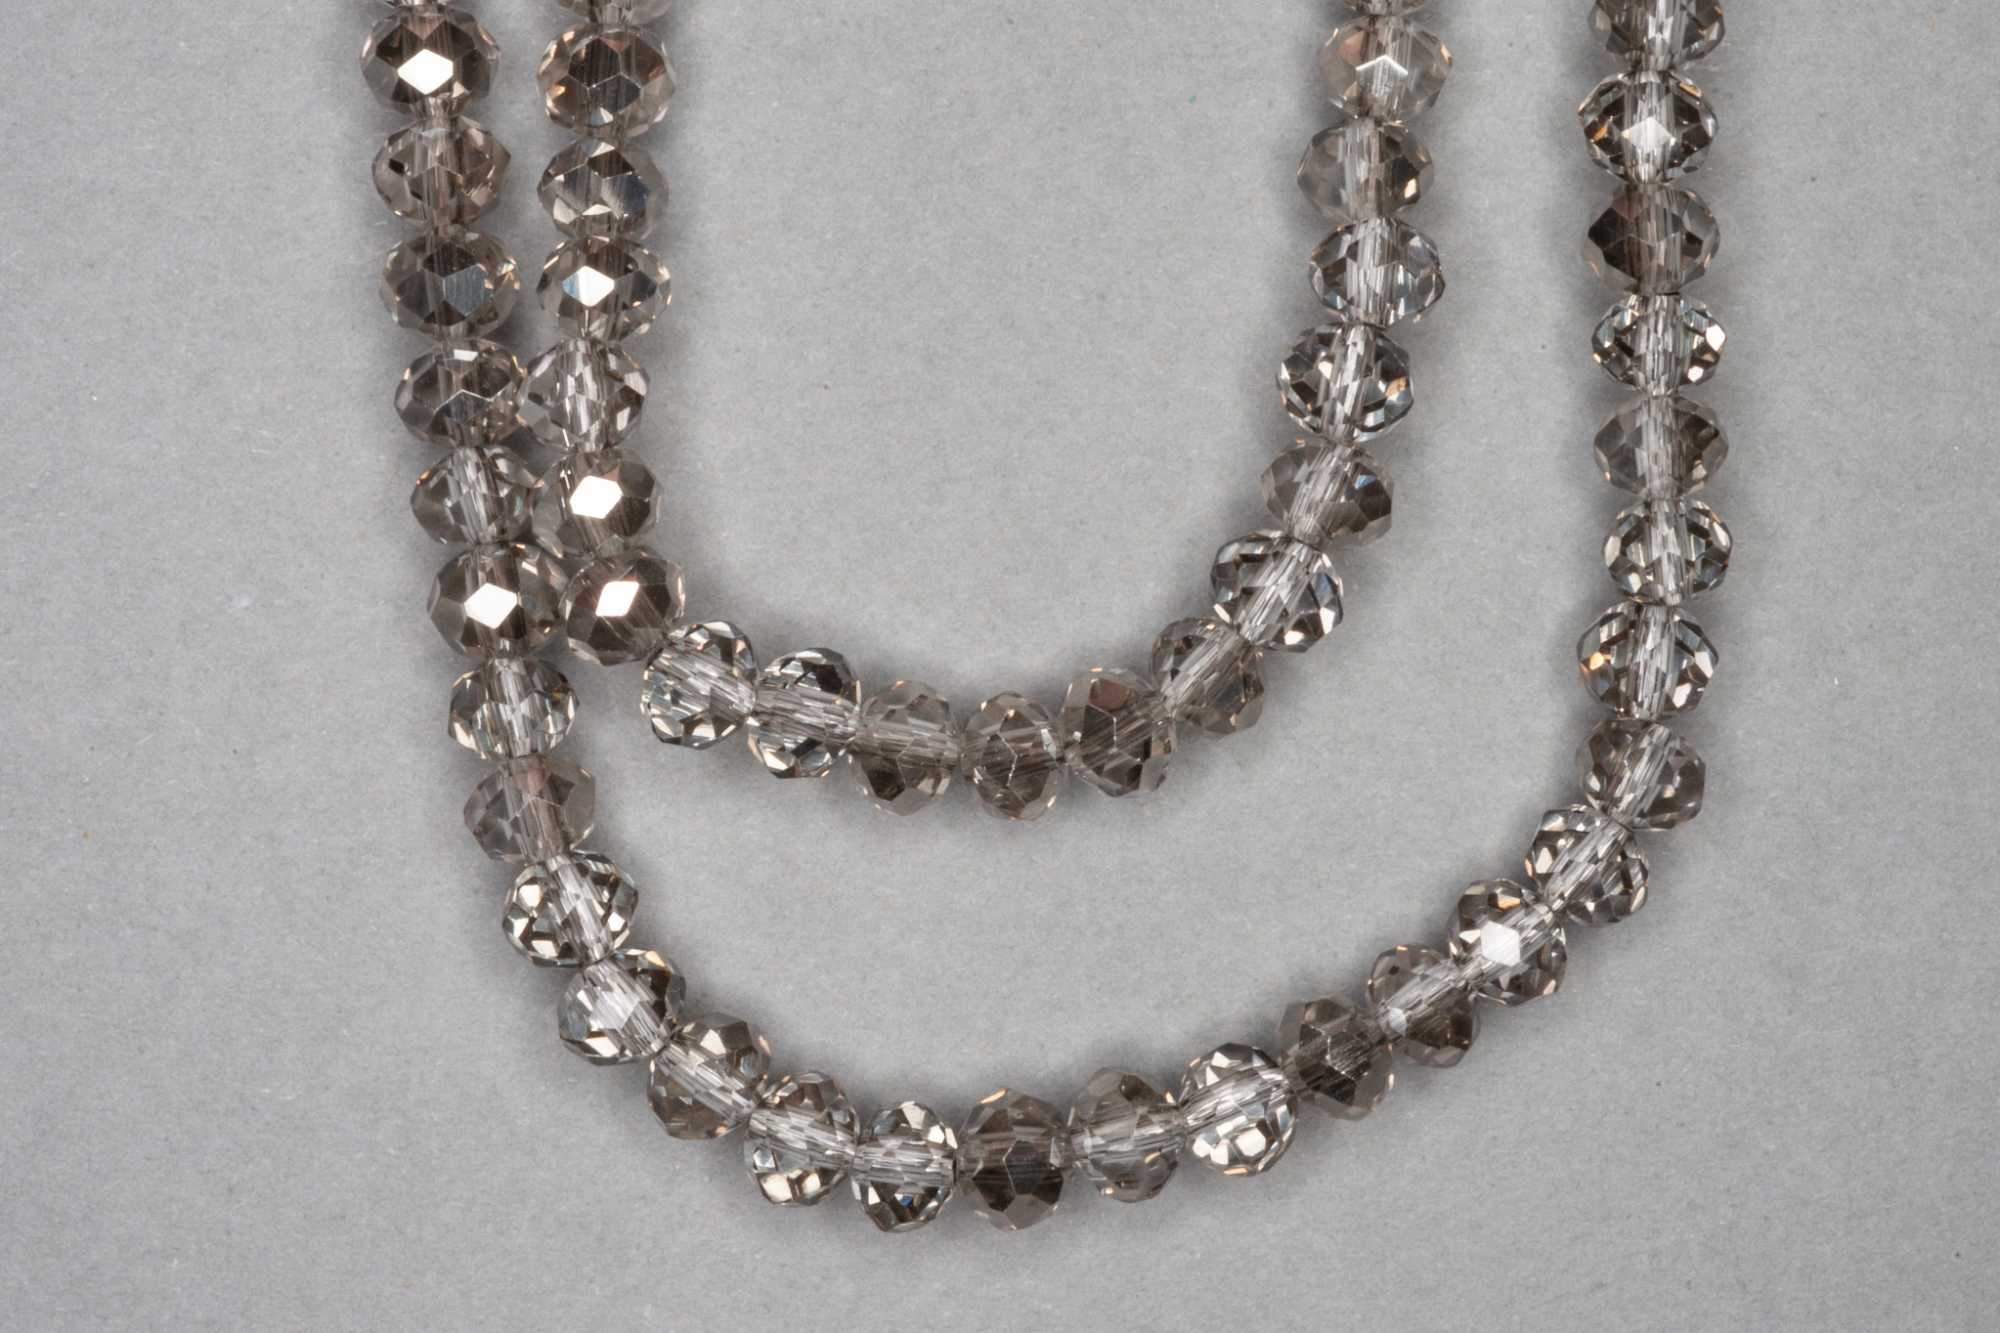 Silver/Smokey Faceted Glass Beads